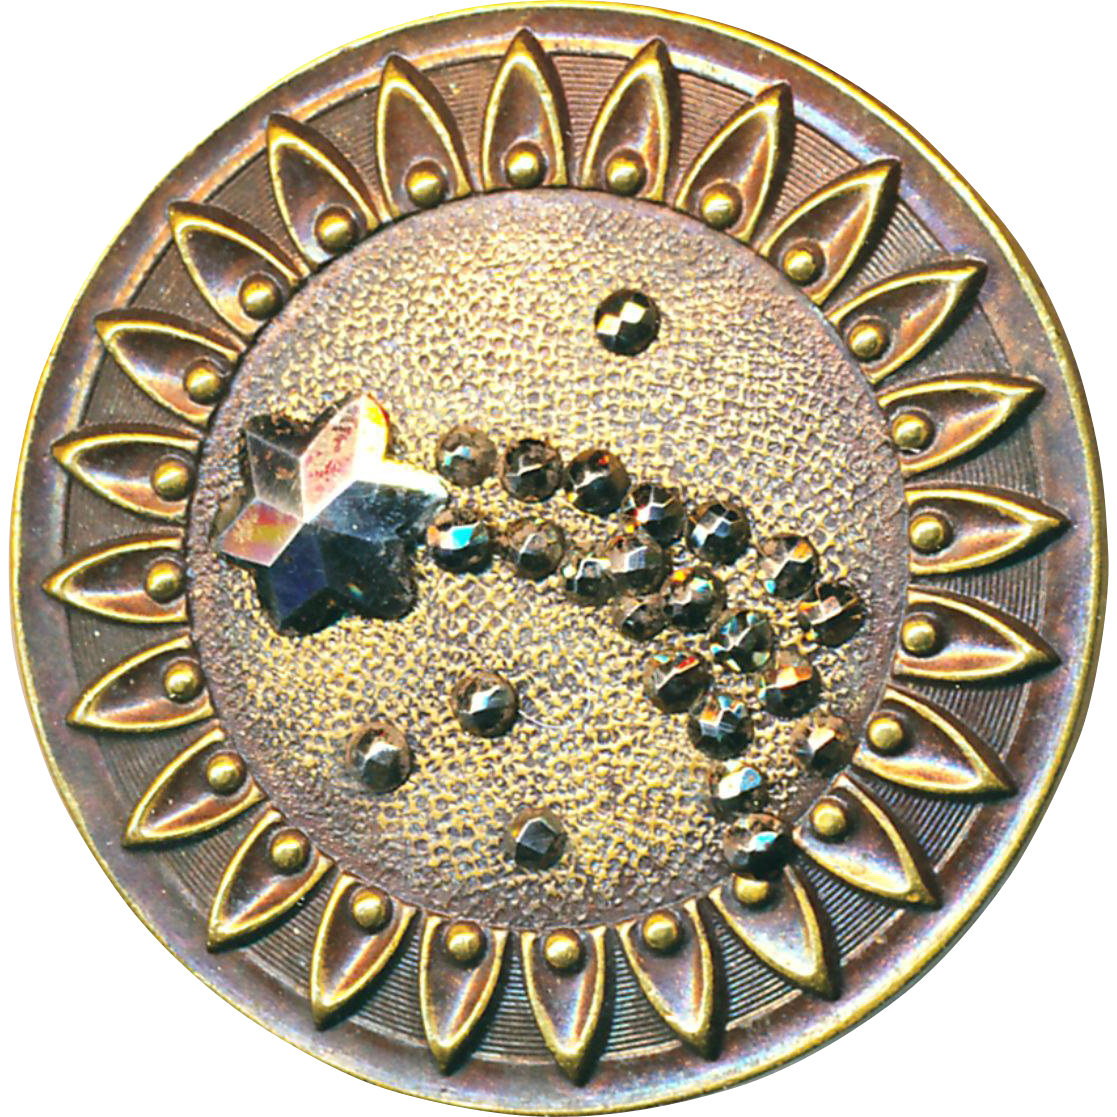 Button--Large 19th C. Cut Shooting Star or Comet Cut Steels on Brass